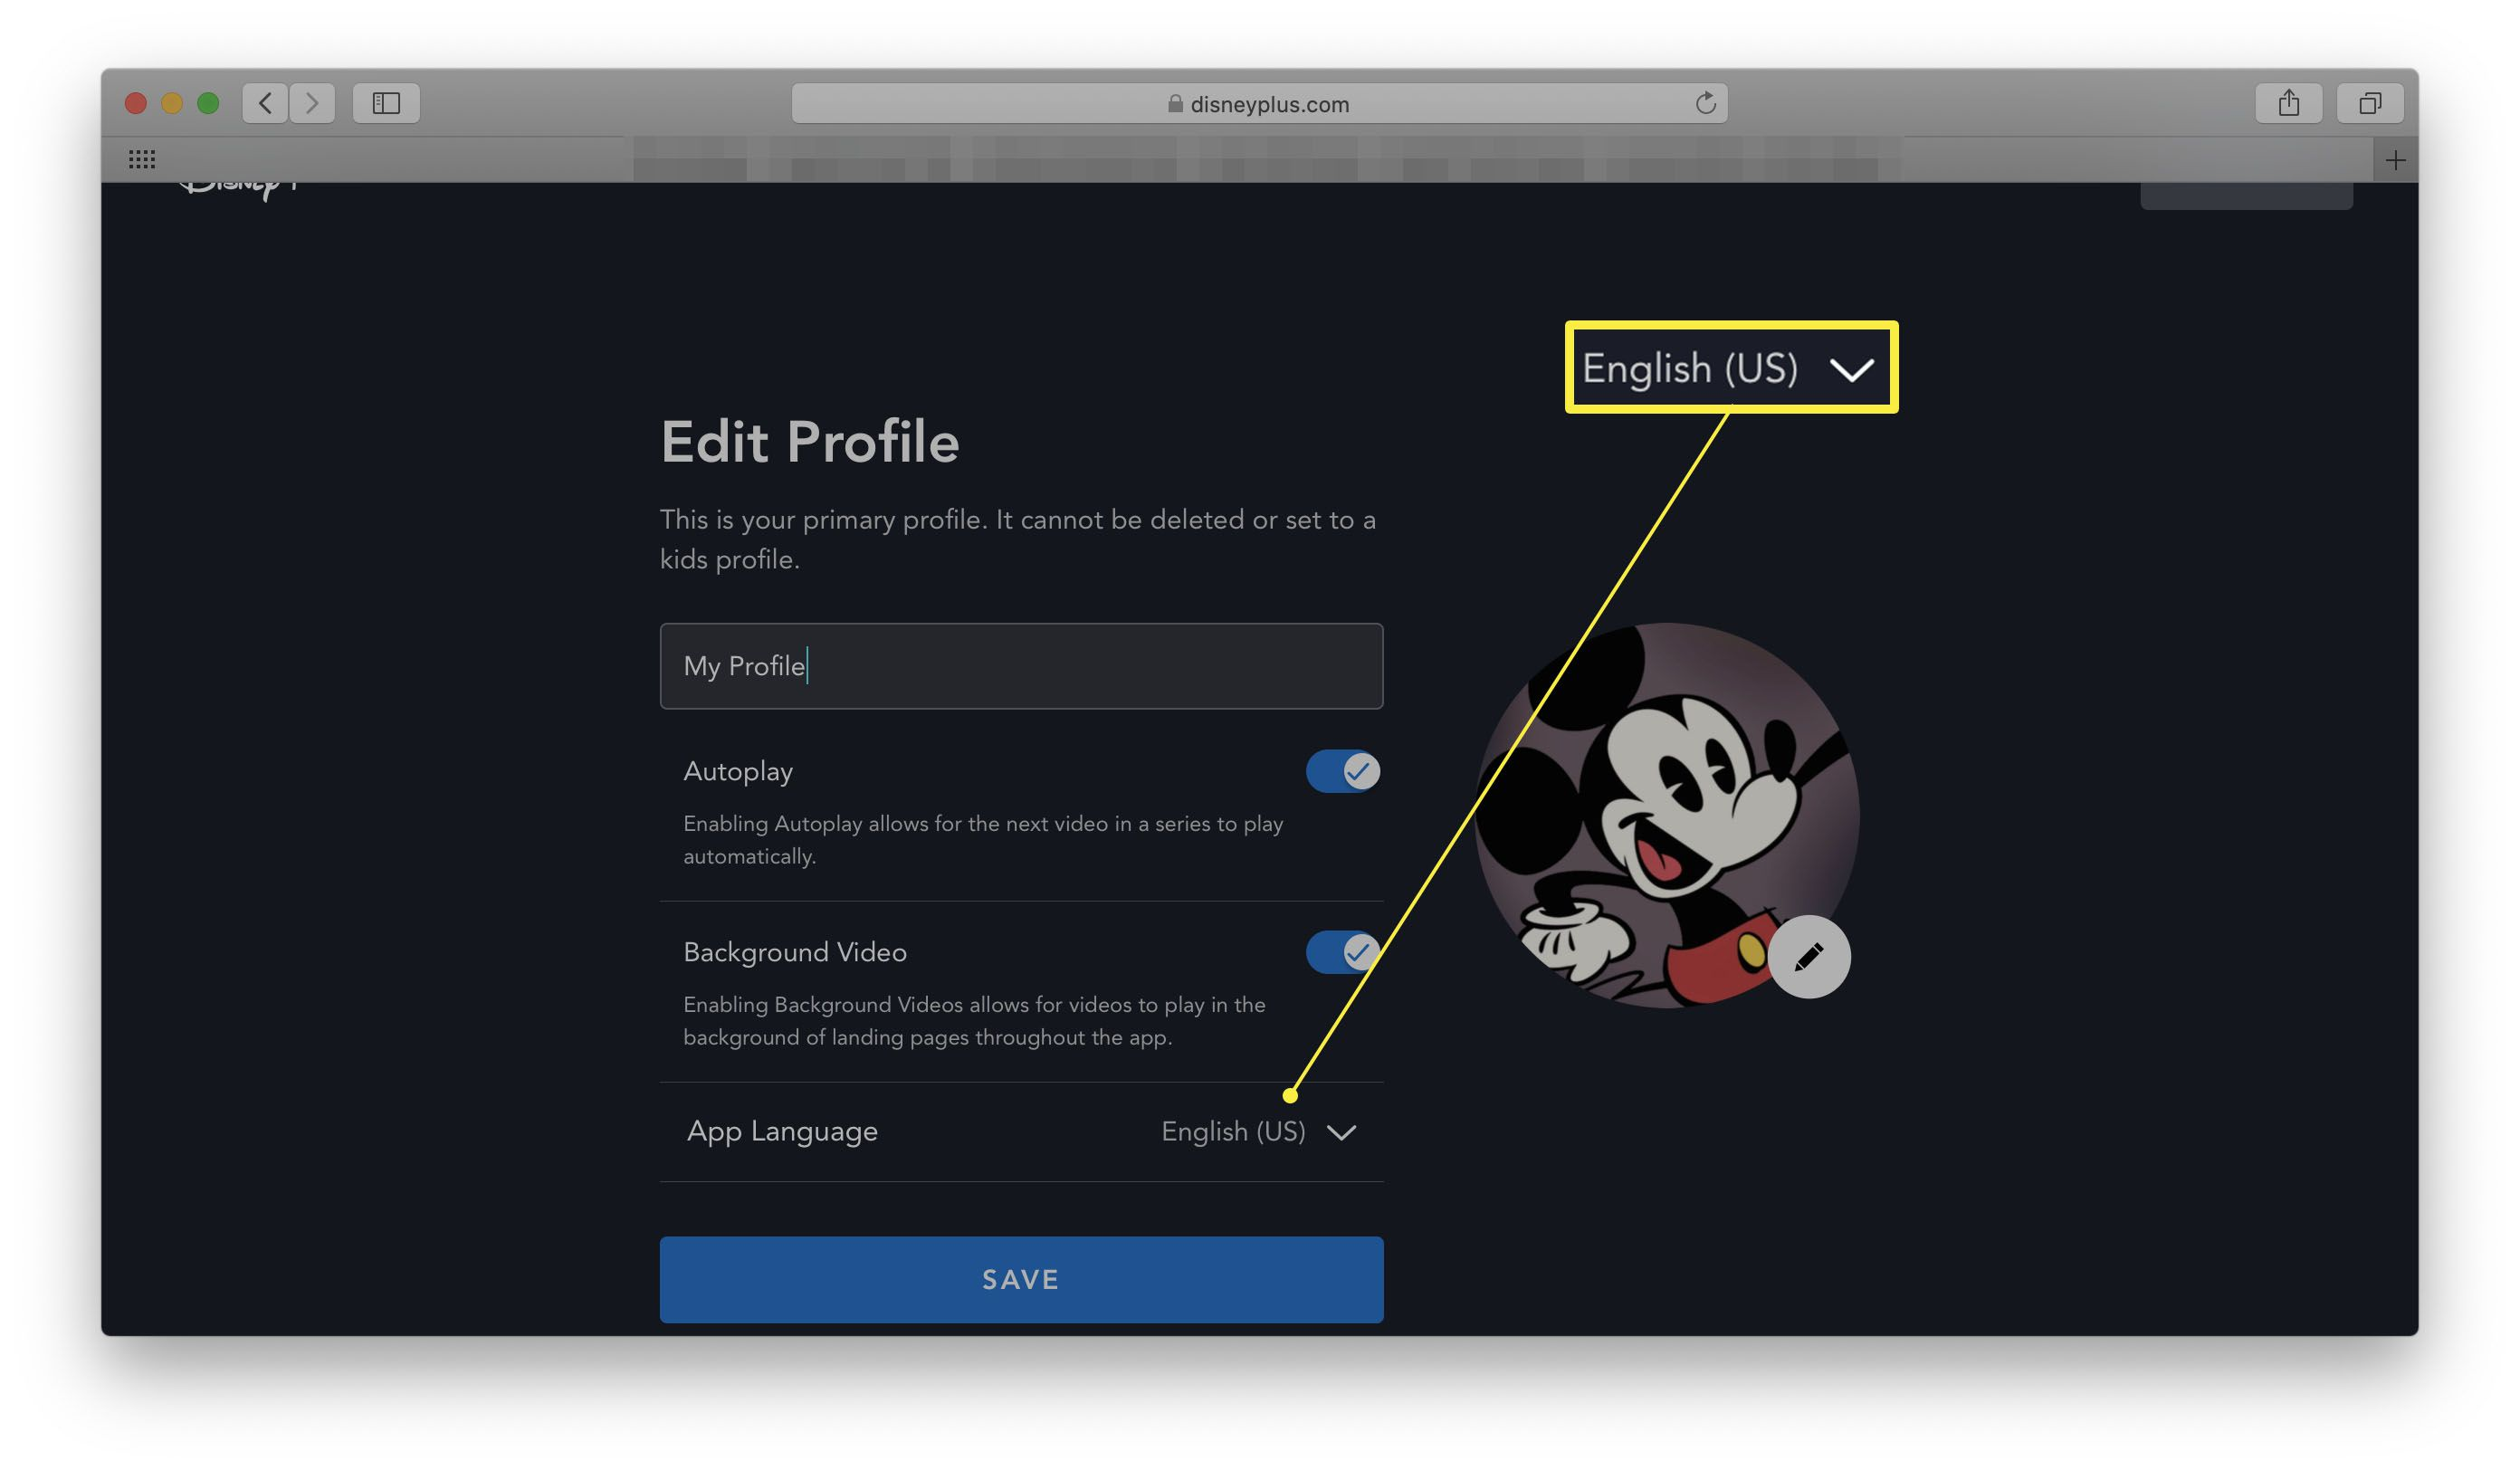 Disney+ website with Edit Profile open and App Language highlighted